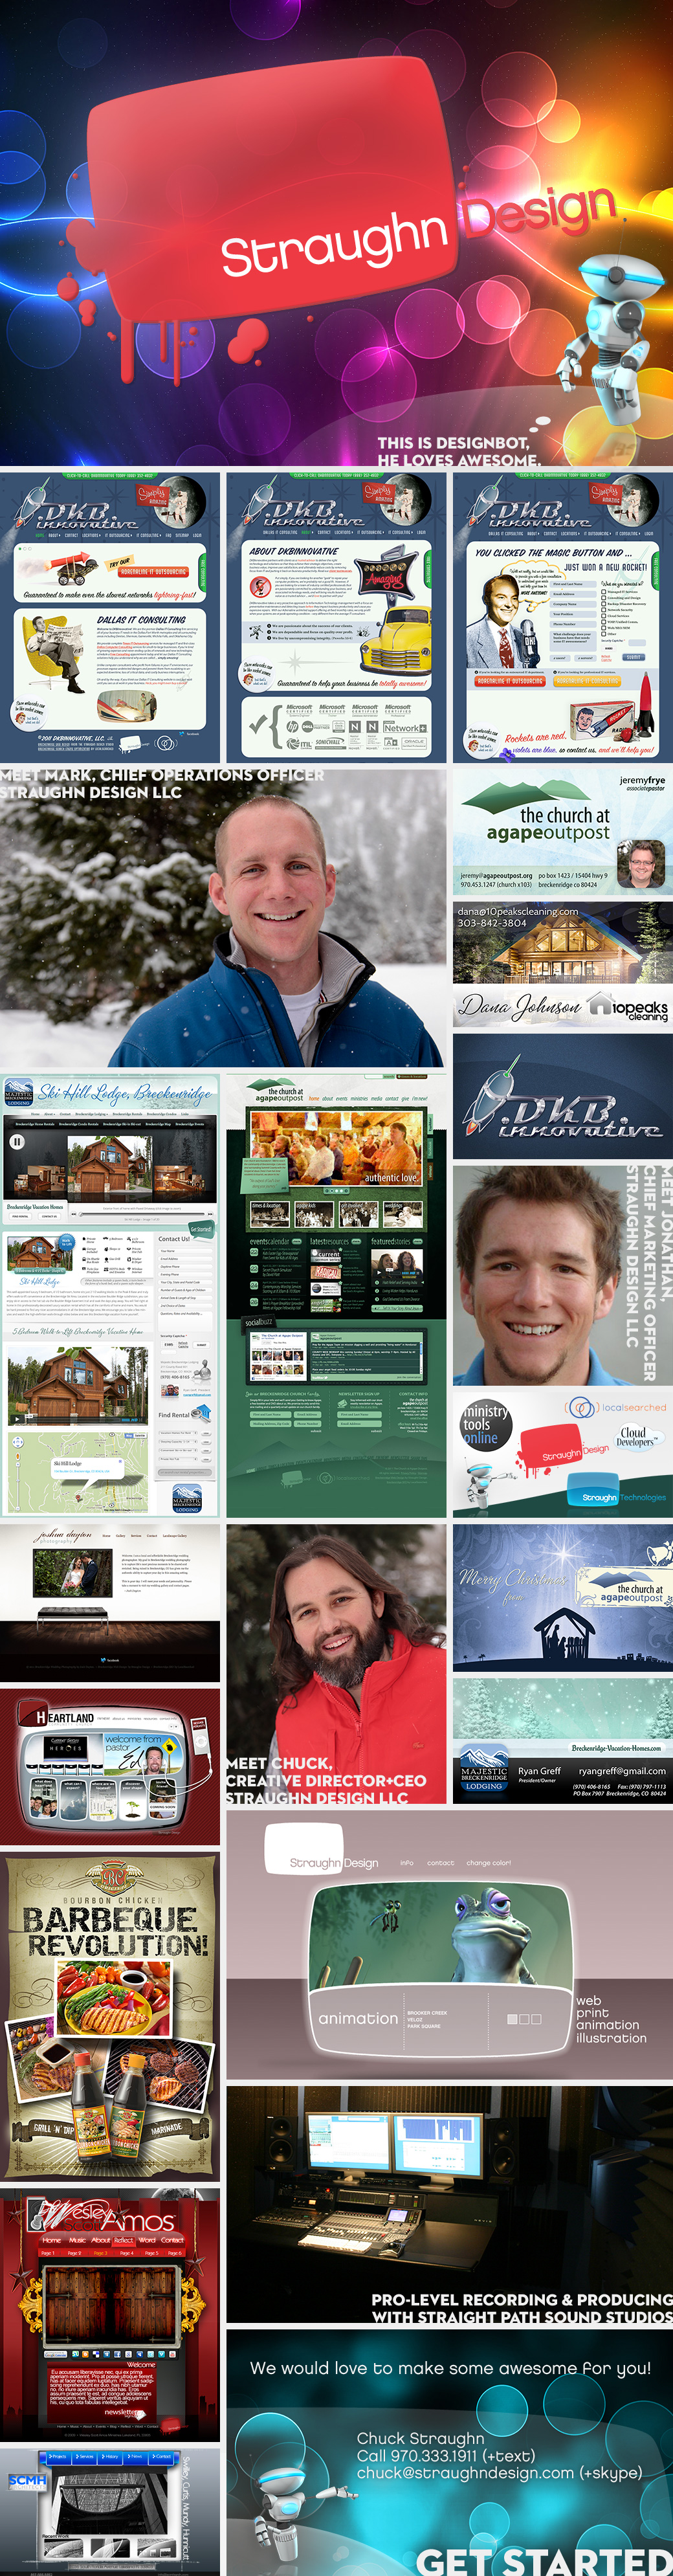 Breckenridge Web Design